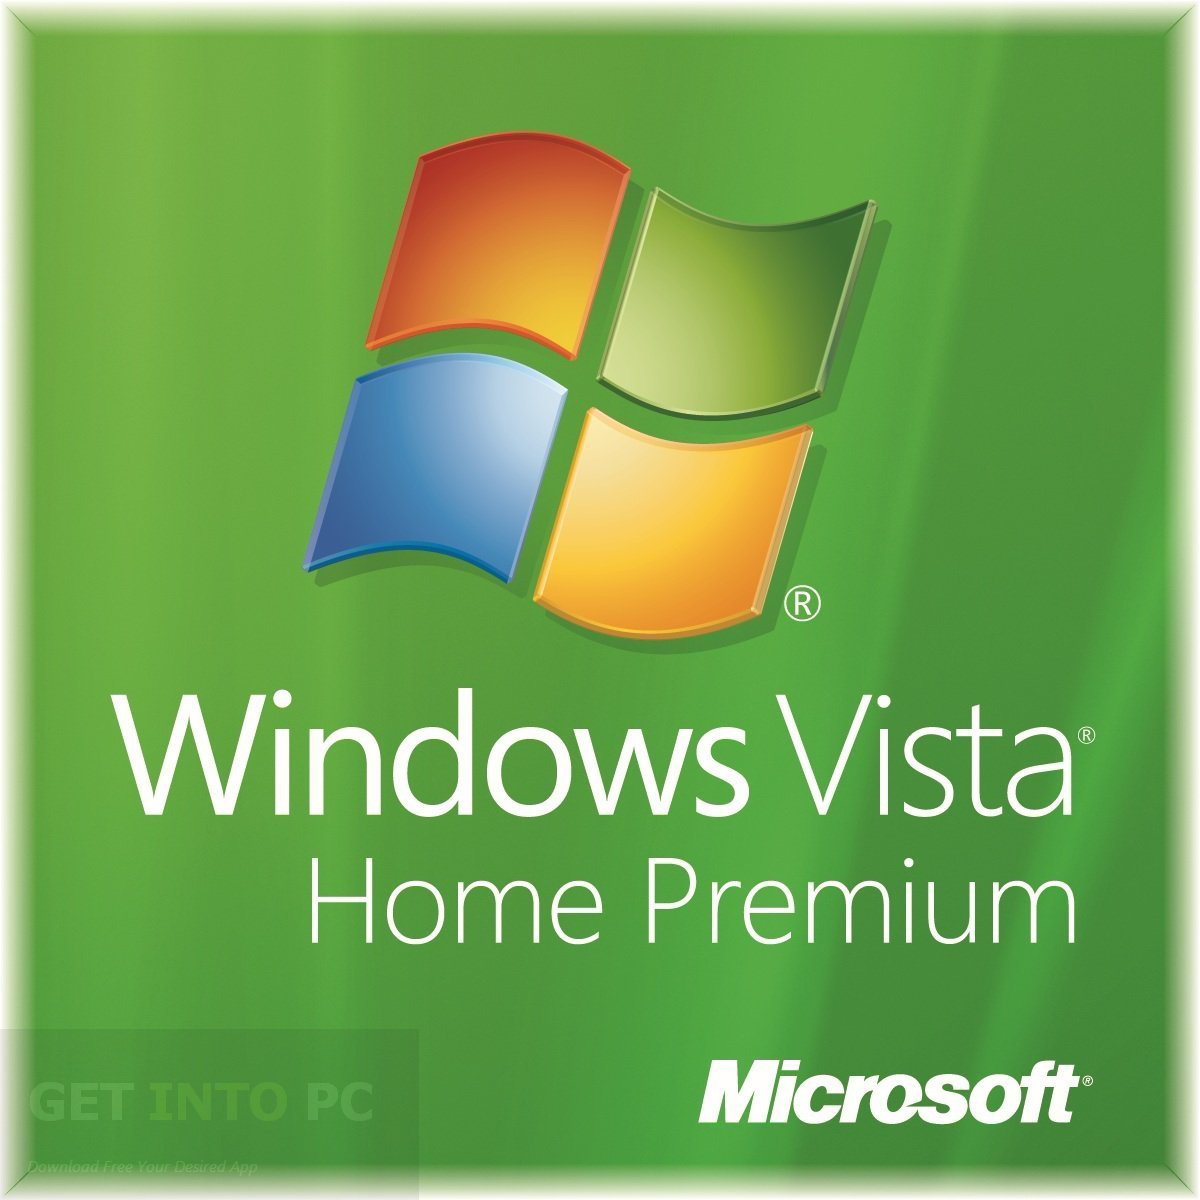 Windows Vista Home Premium Free Download ISO 32 Bit 64 Bit